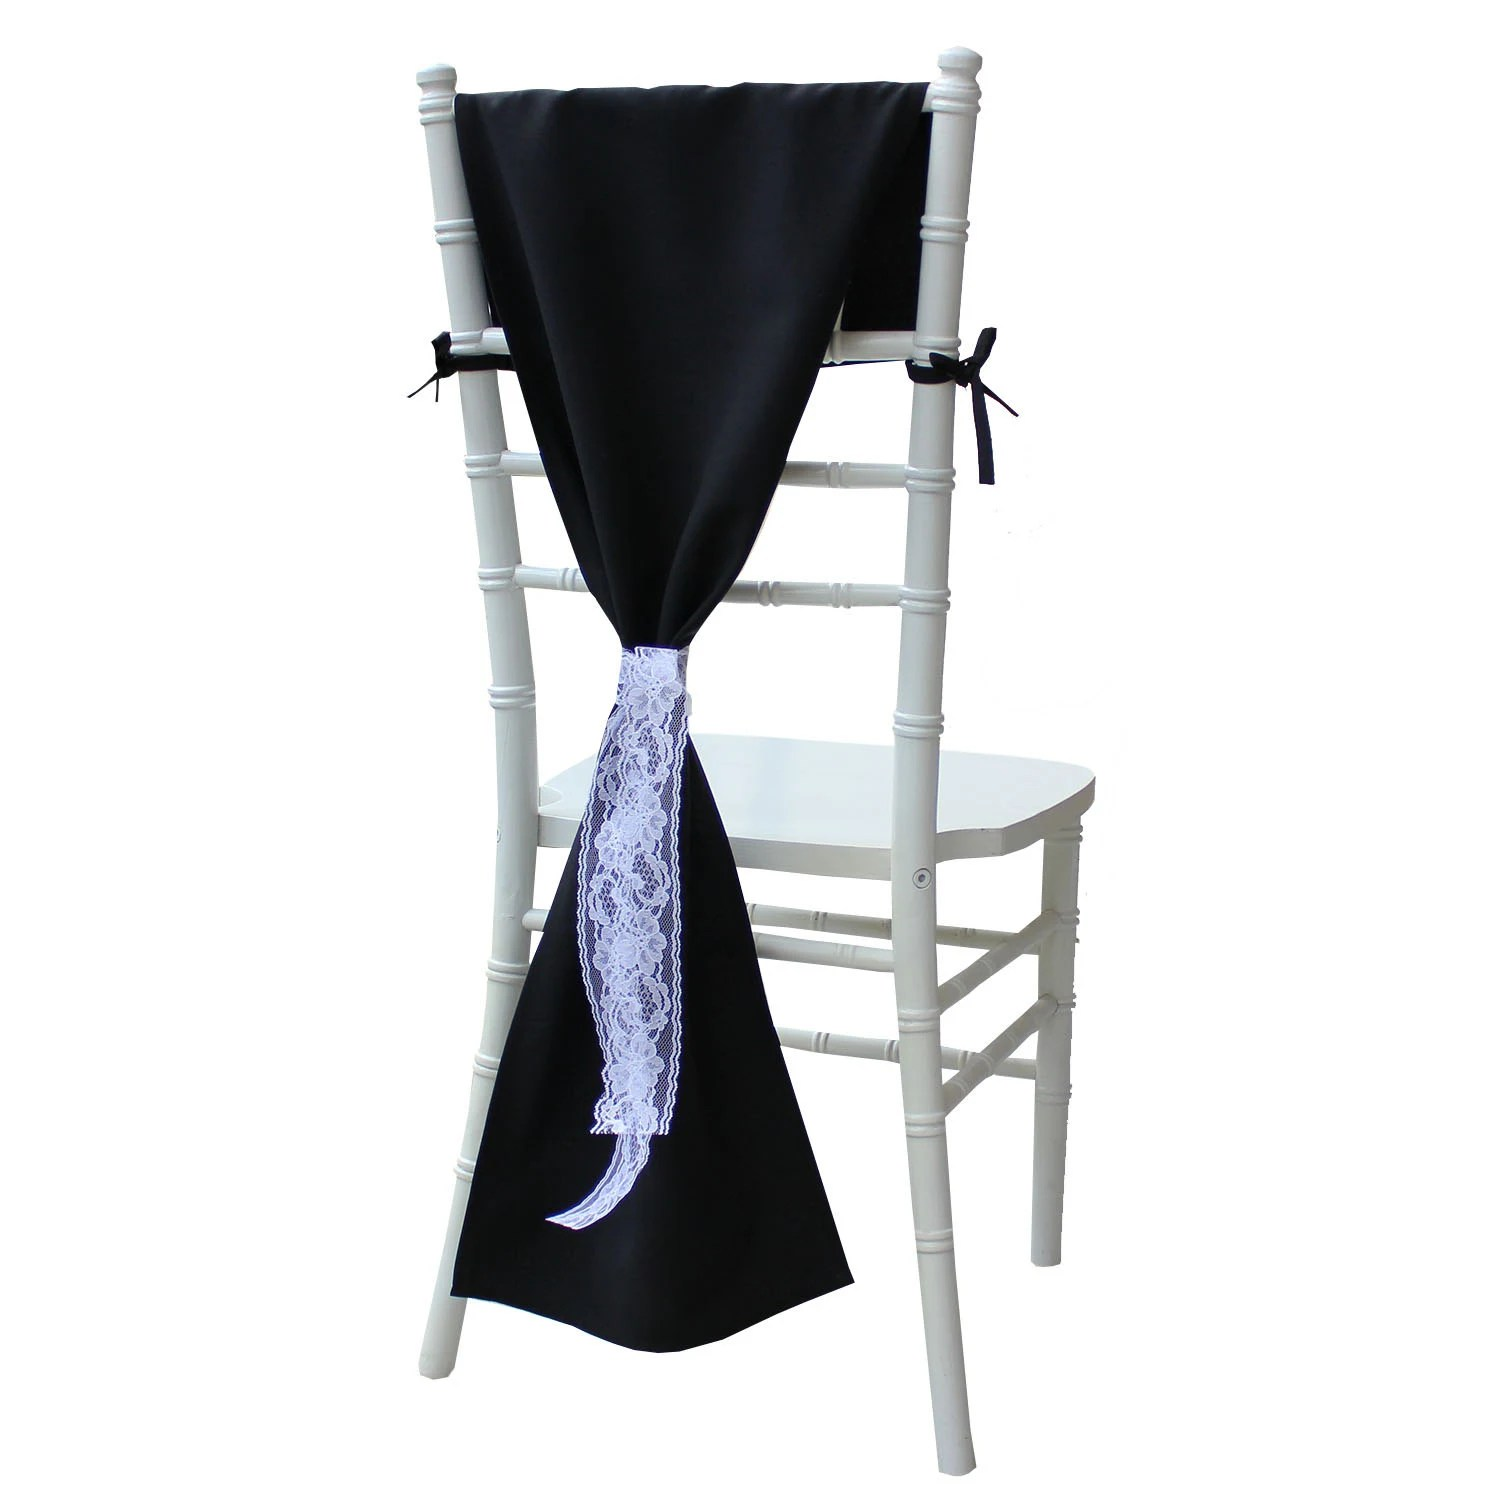 Chivary Chairs Black Chair Hoods For Chiavari Chairs Black Chiavari Chair